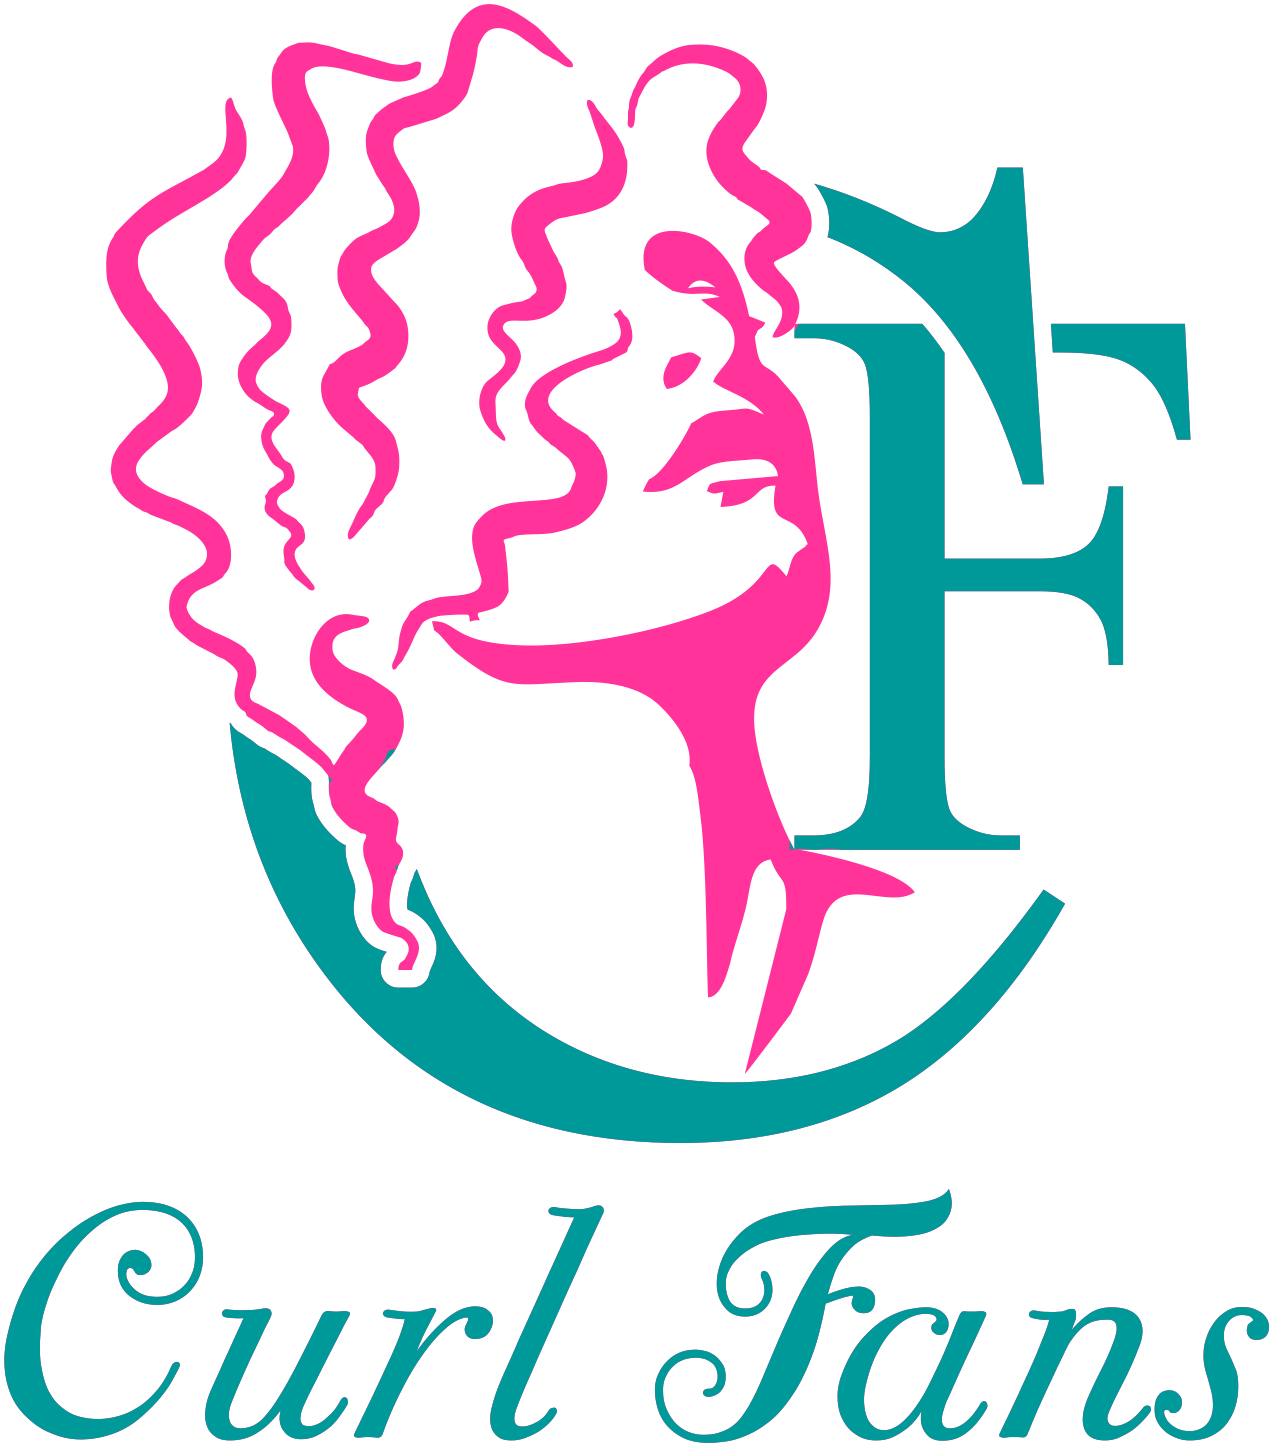 A center for curly hair